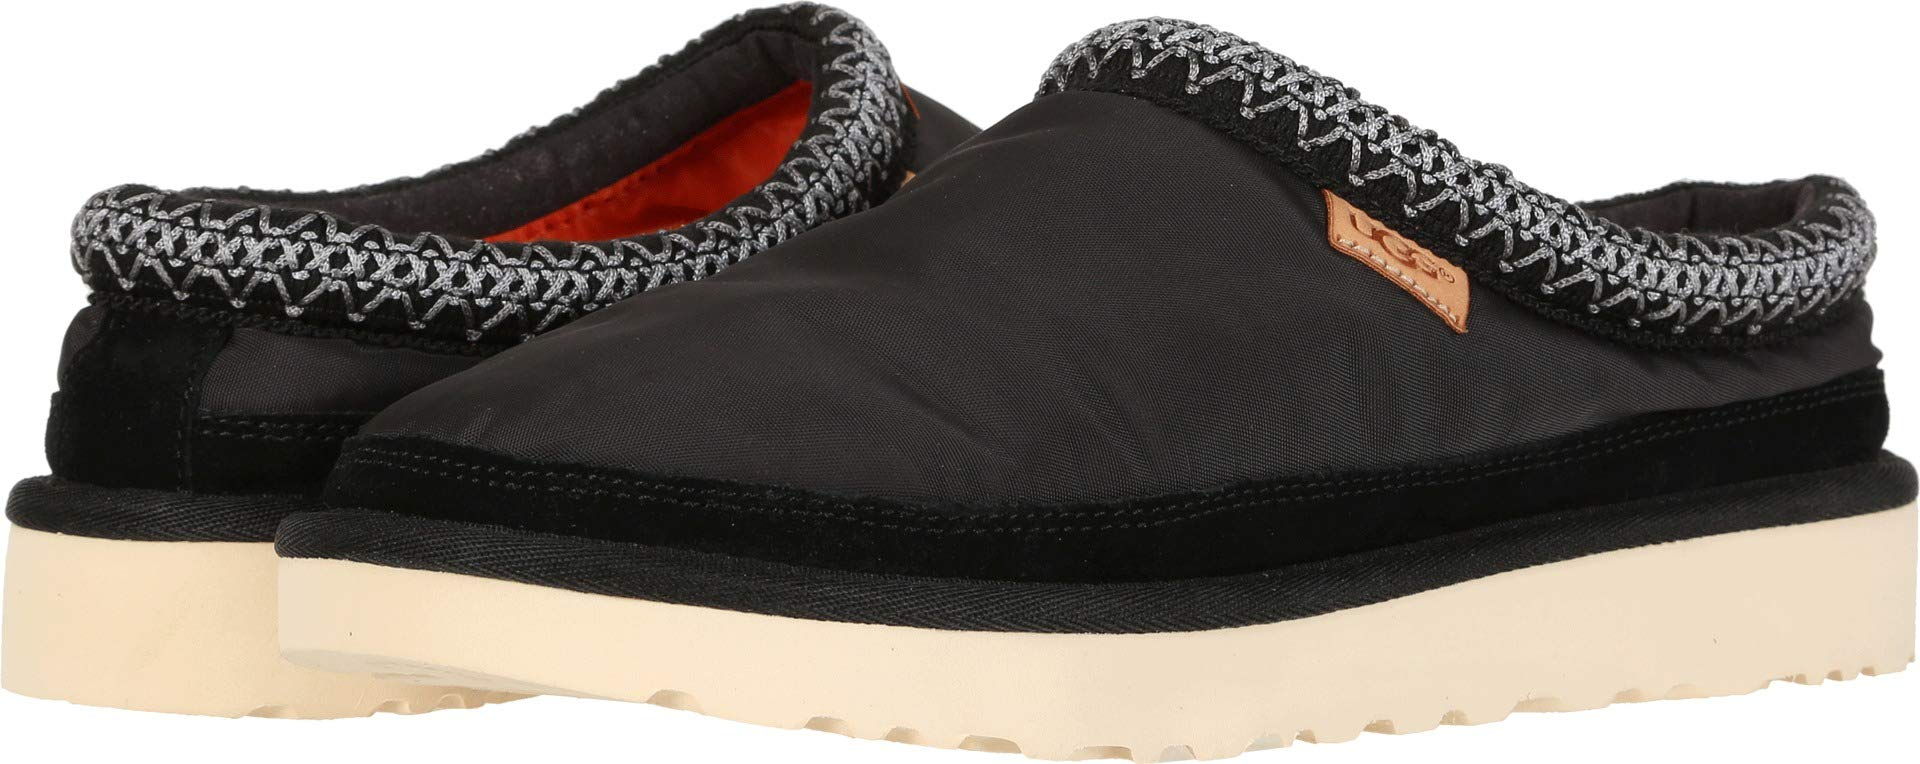 UGG Men's Tasman MLT Slipper, Black, 11 Medium US